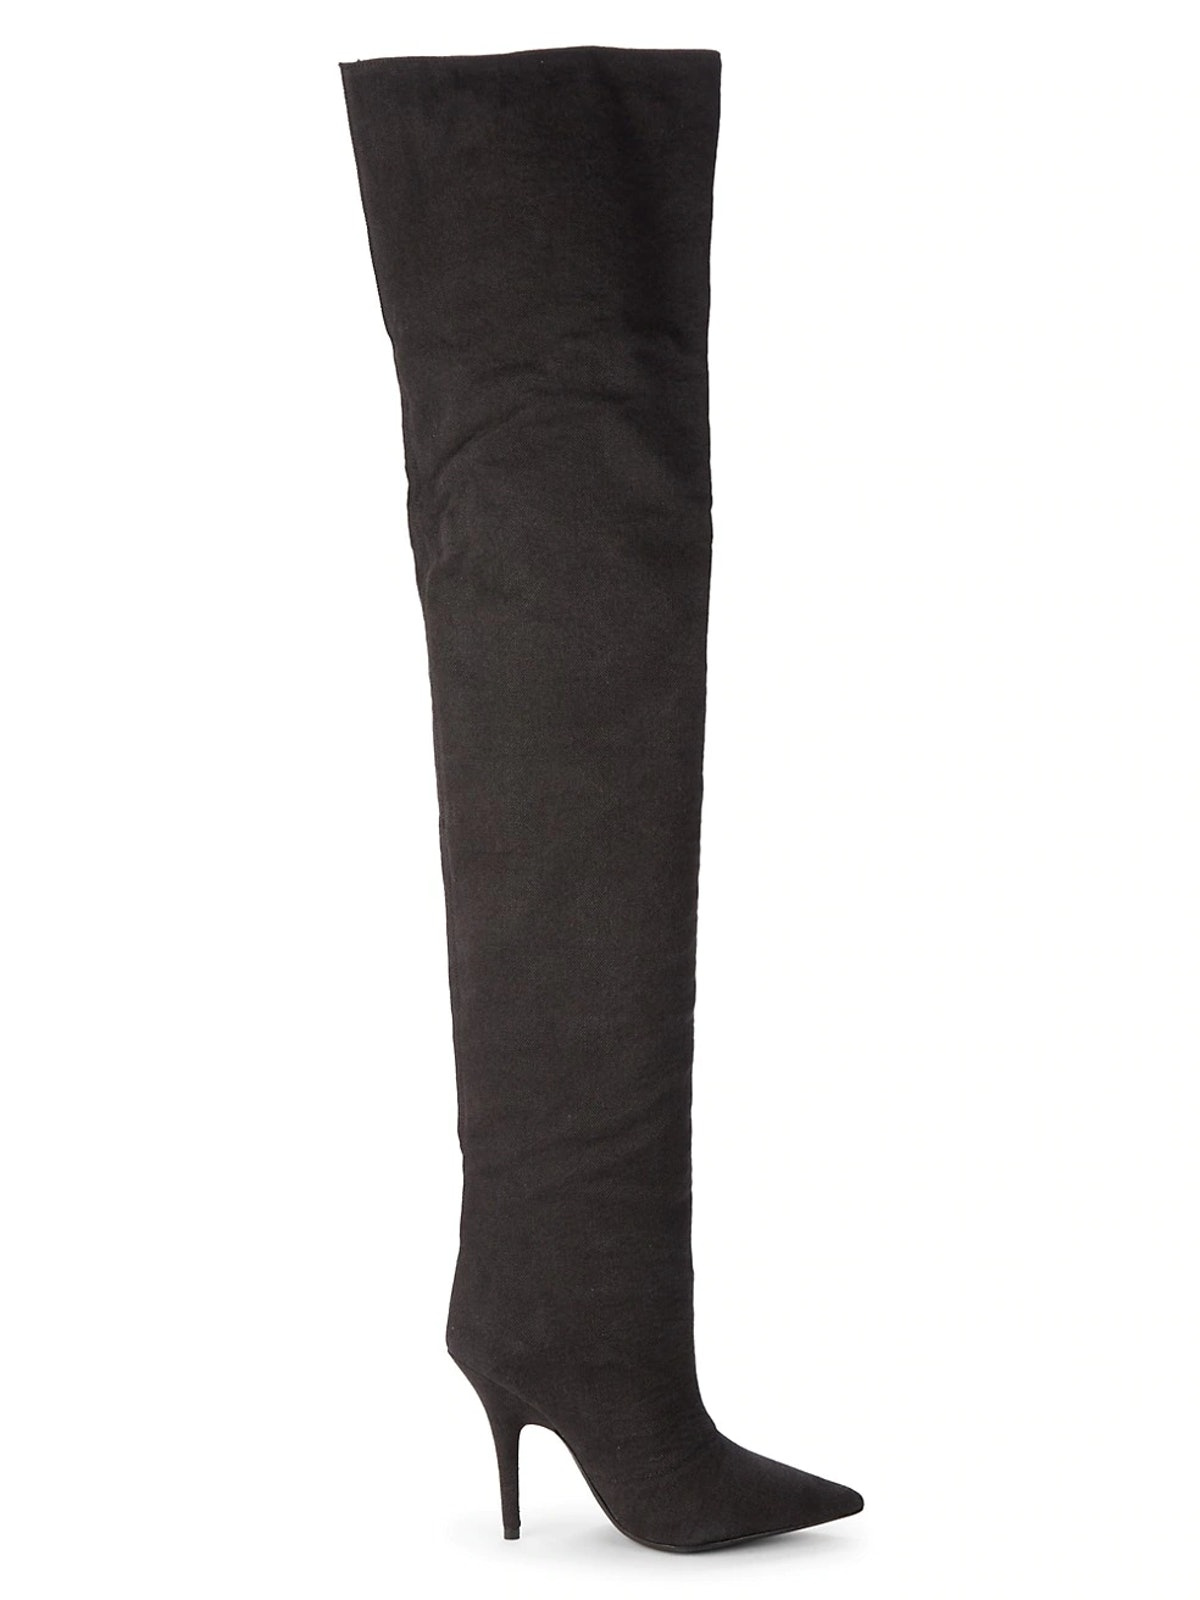 Yeezy's black thigh-high boots.